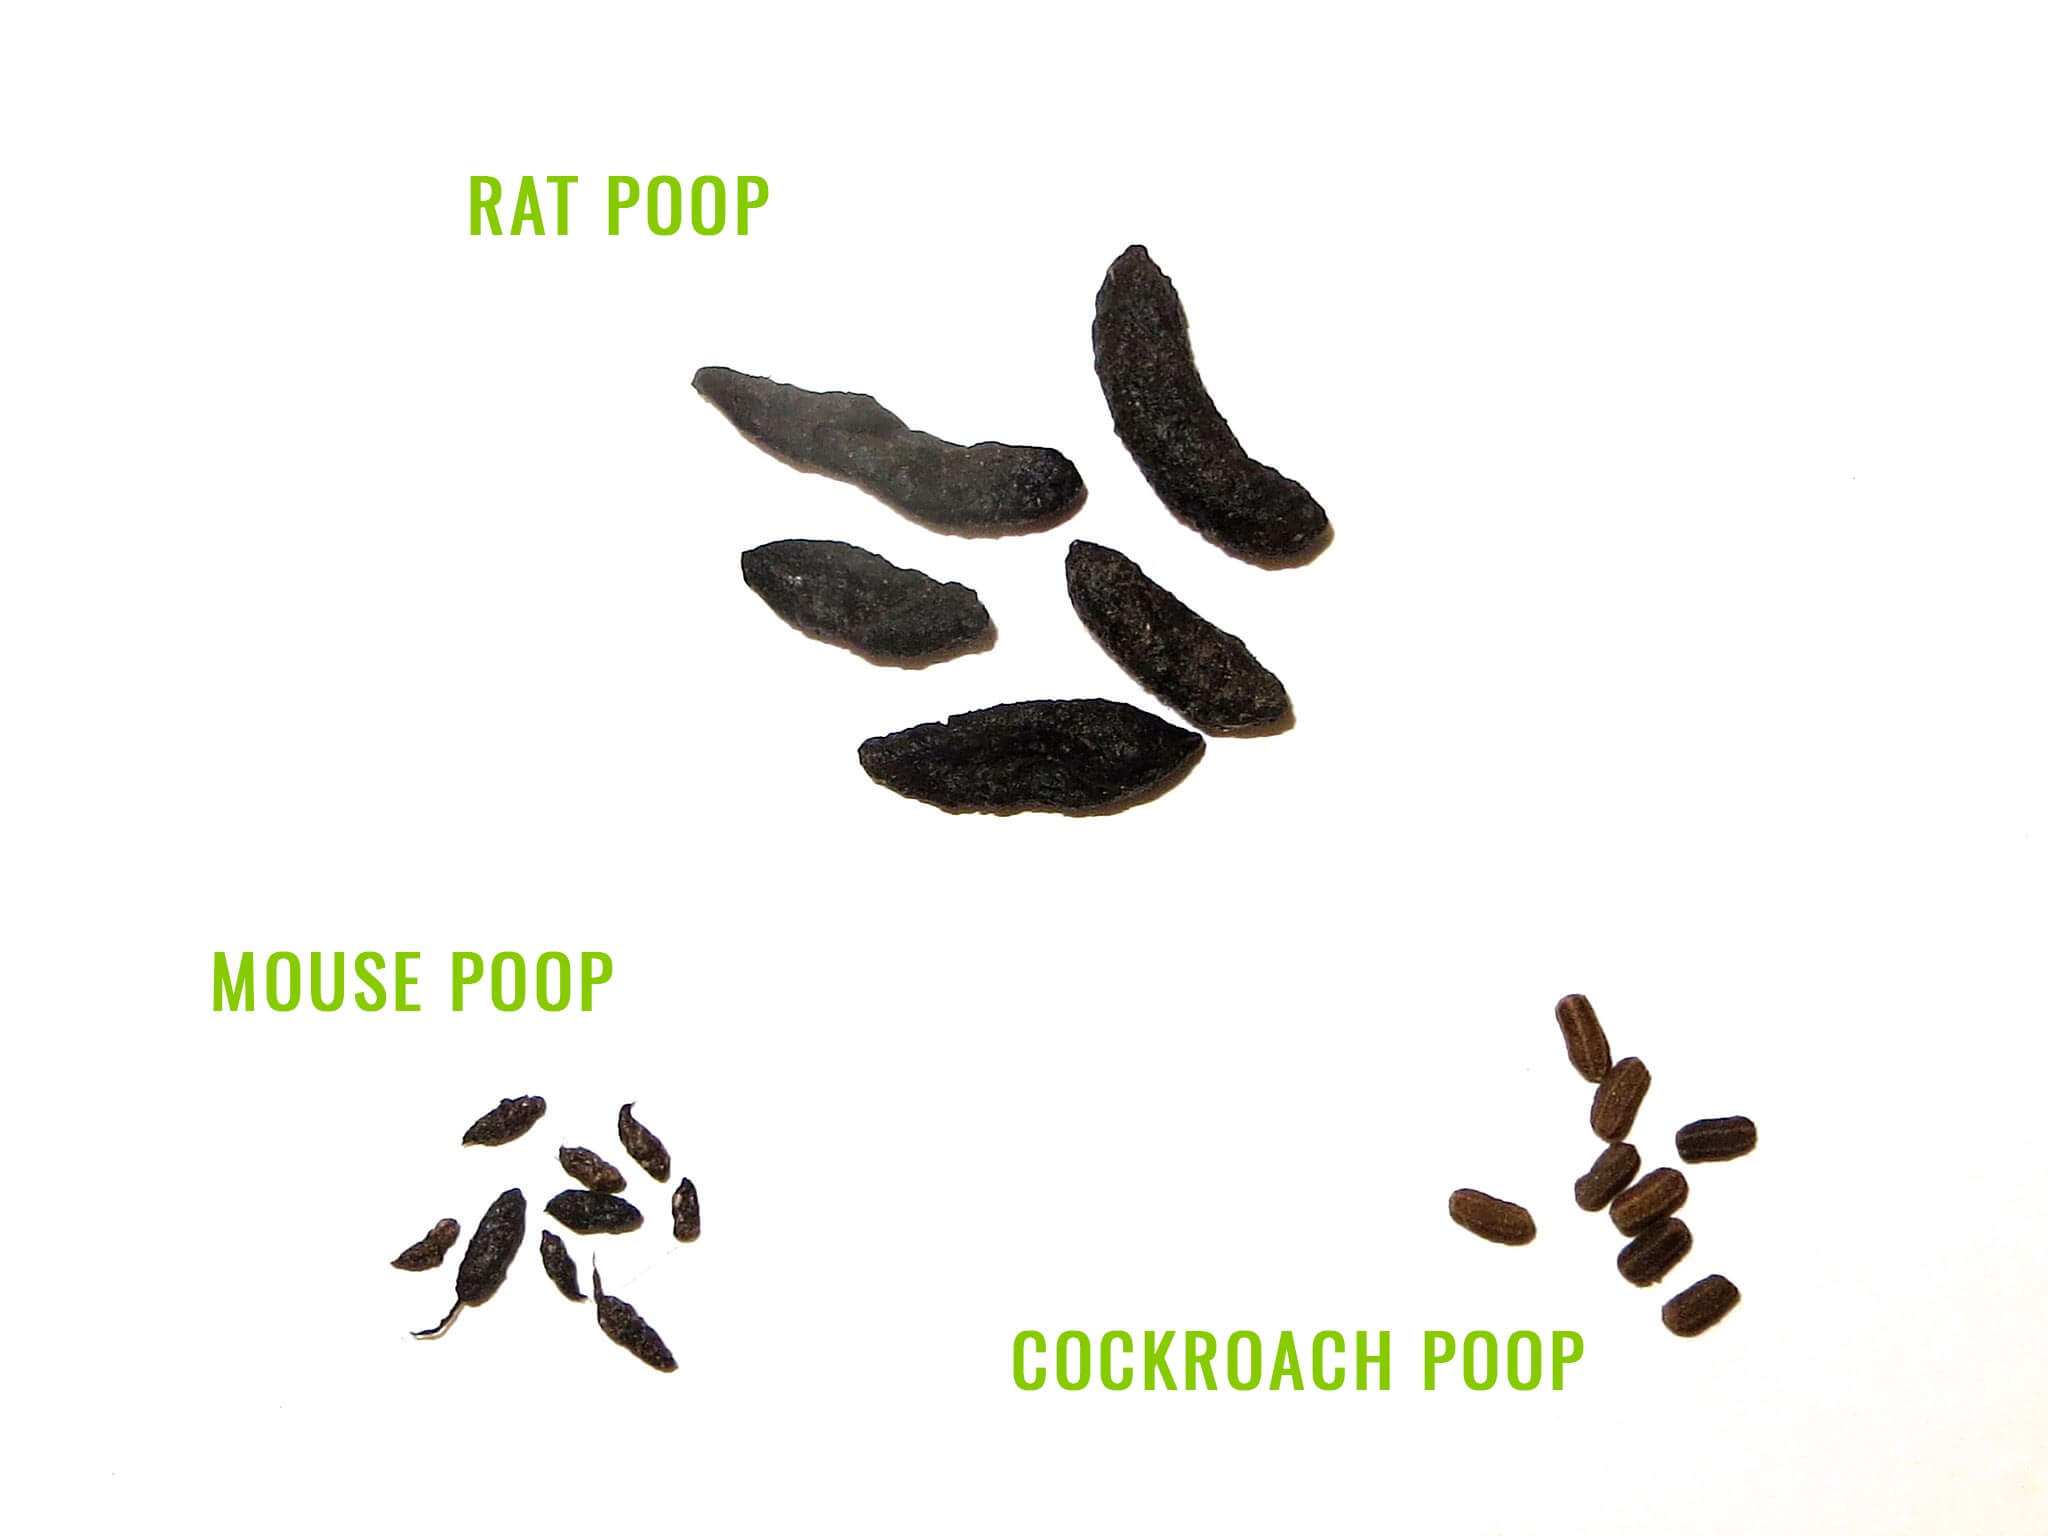 Rat poop vs Mouse poop